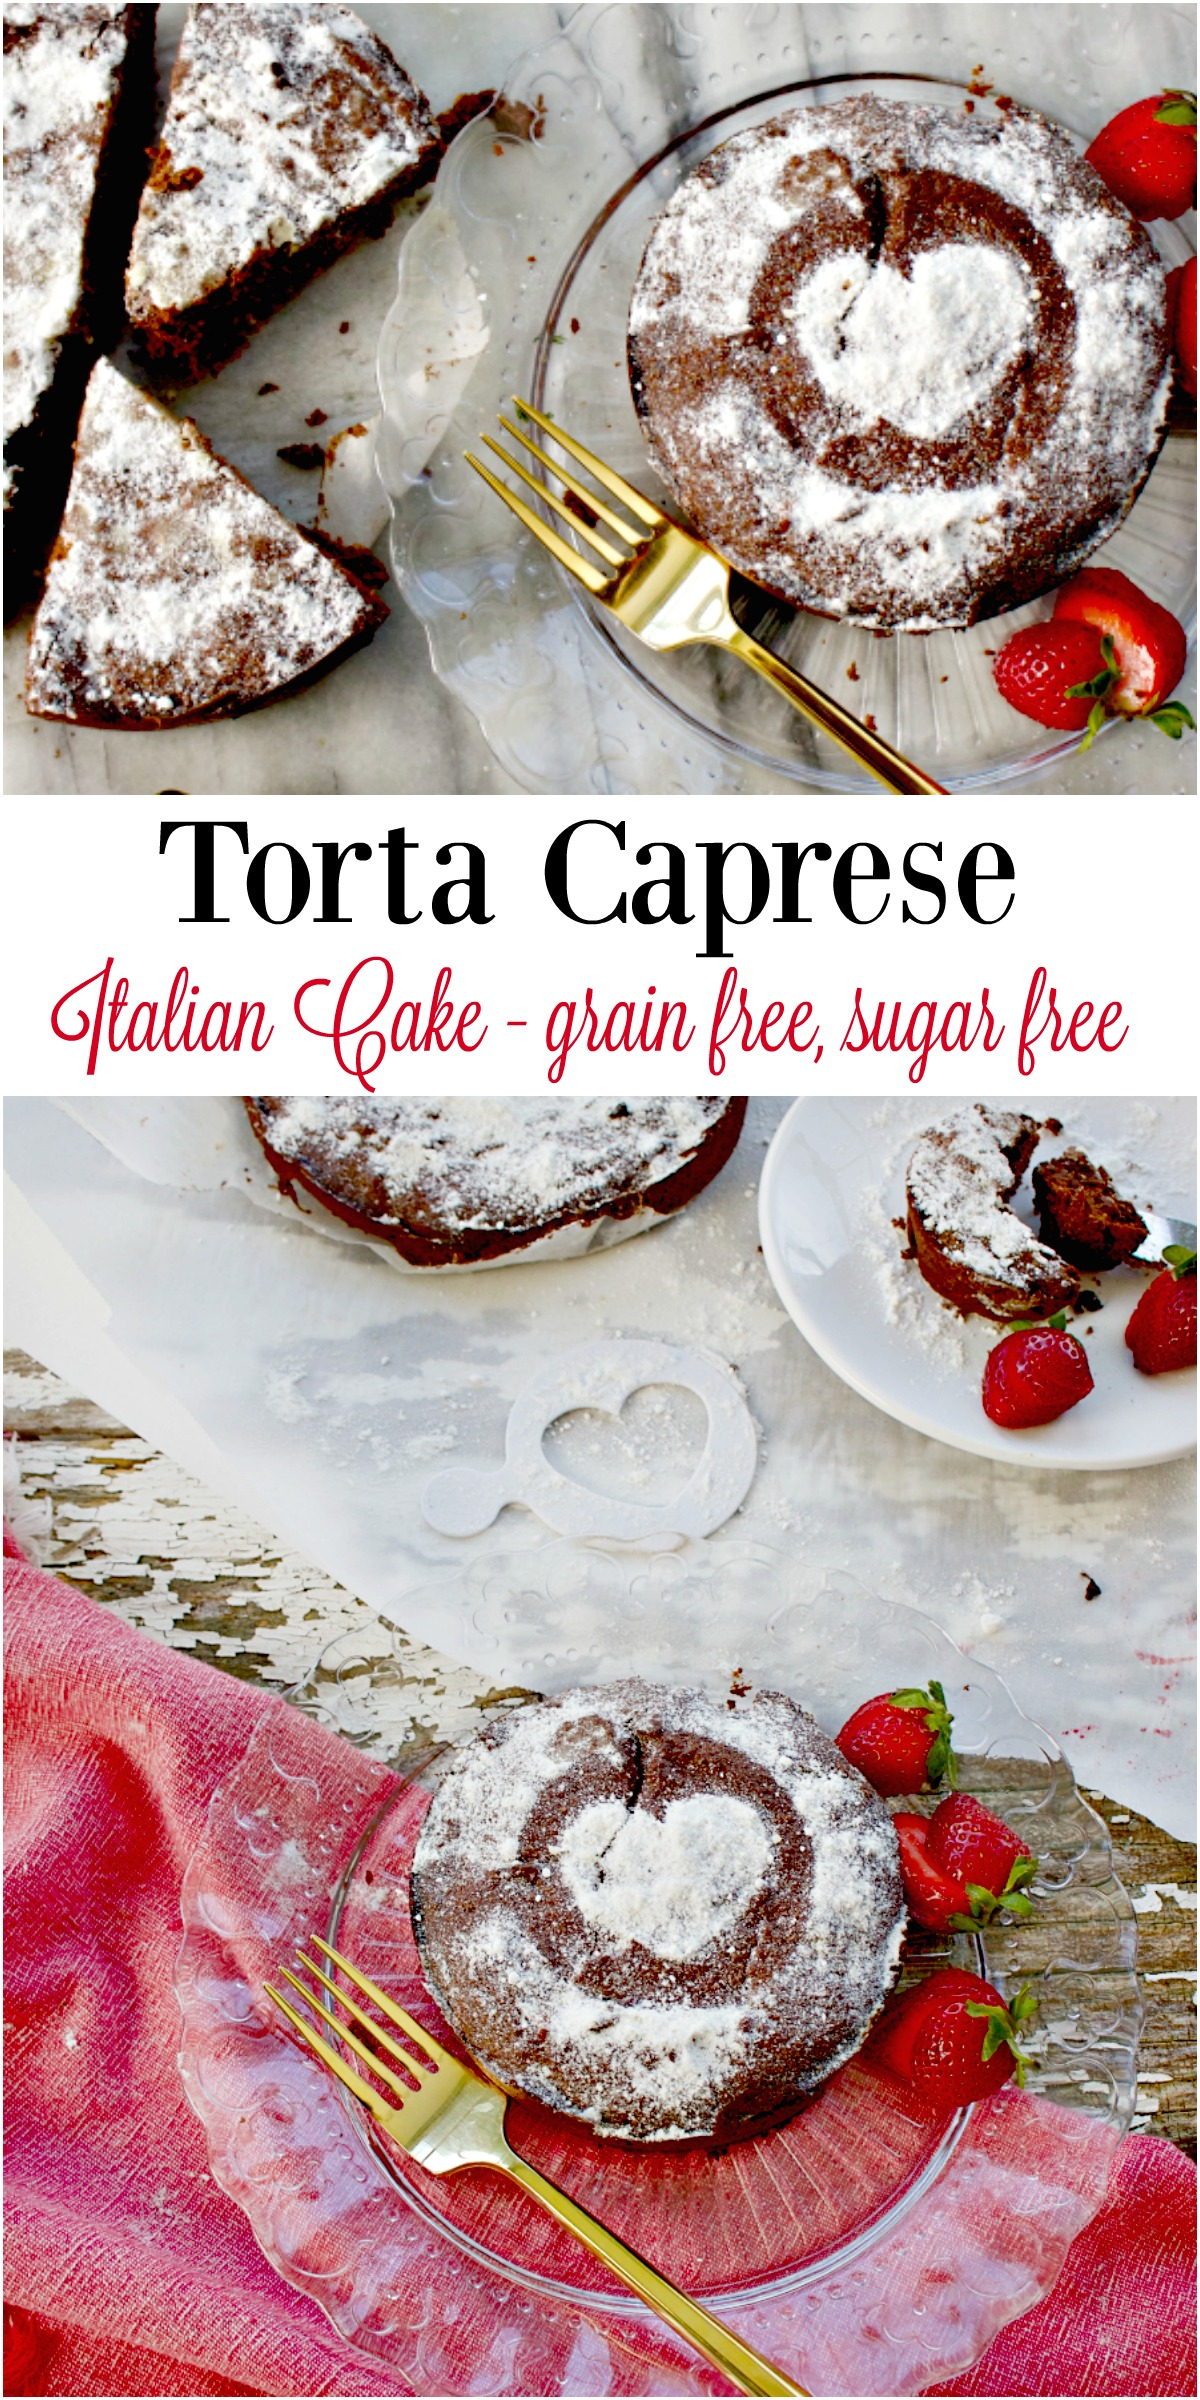 Torta Caprese, Chocolate Almond Flour Cake, Gluten Free from Spinach Tiger